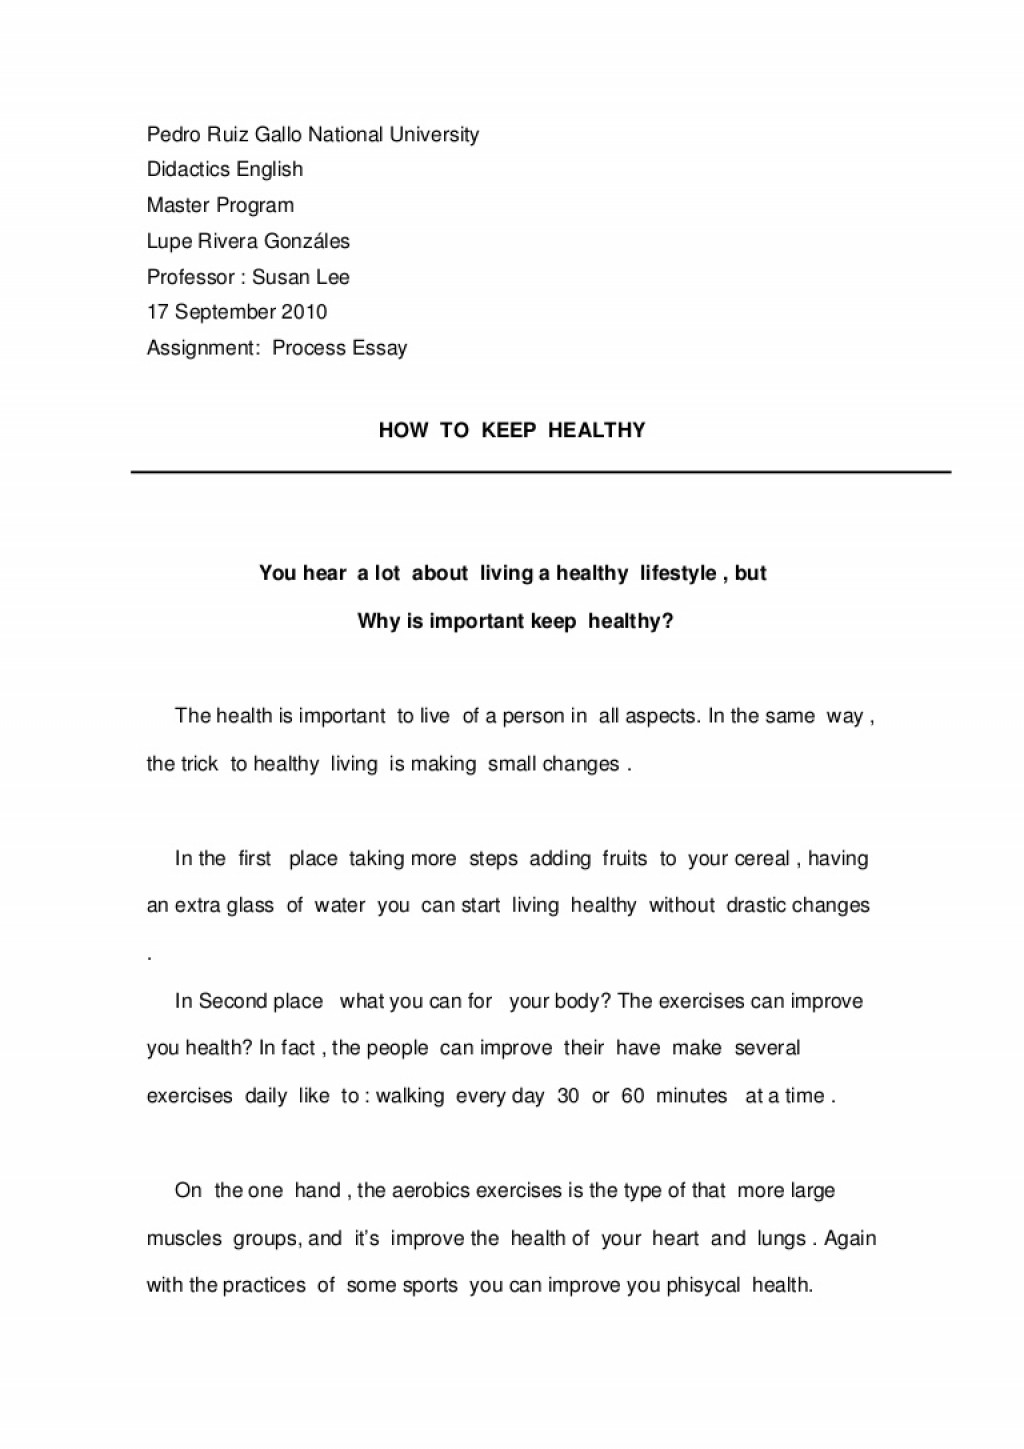 018 Essayhowtokeephealthy Phpapp02 Thumbnail Essay On Regular Exercise Impressive Physical In 200 Words For Class 4 Hindi Large